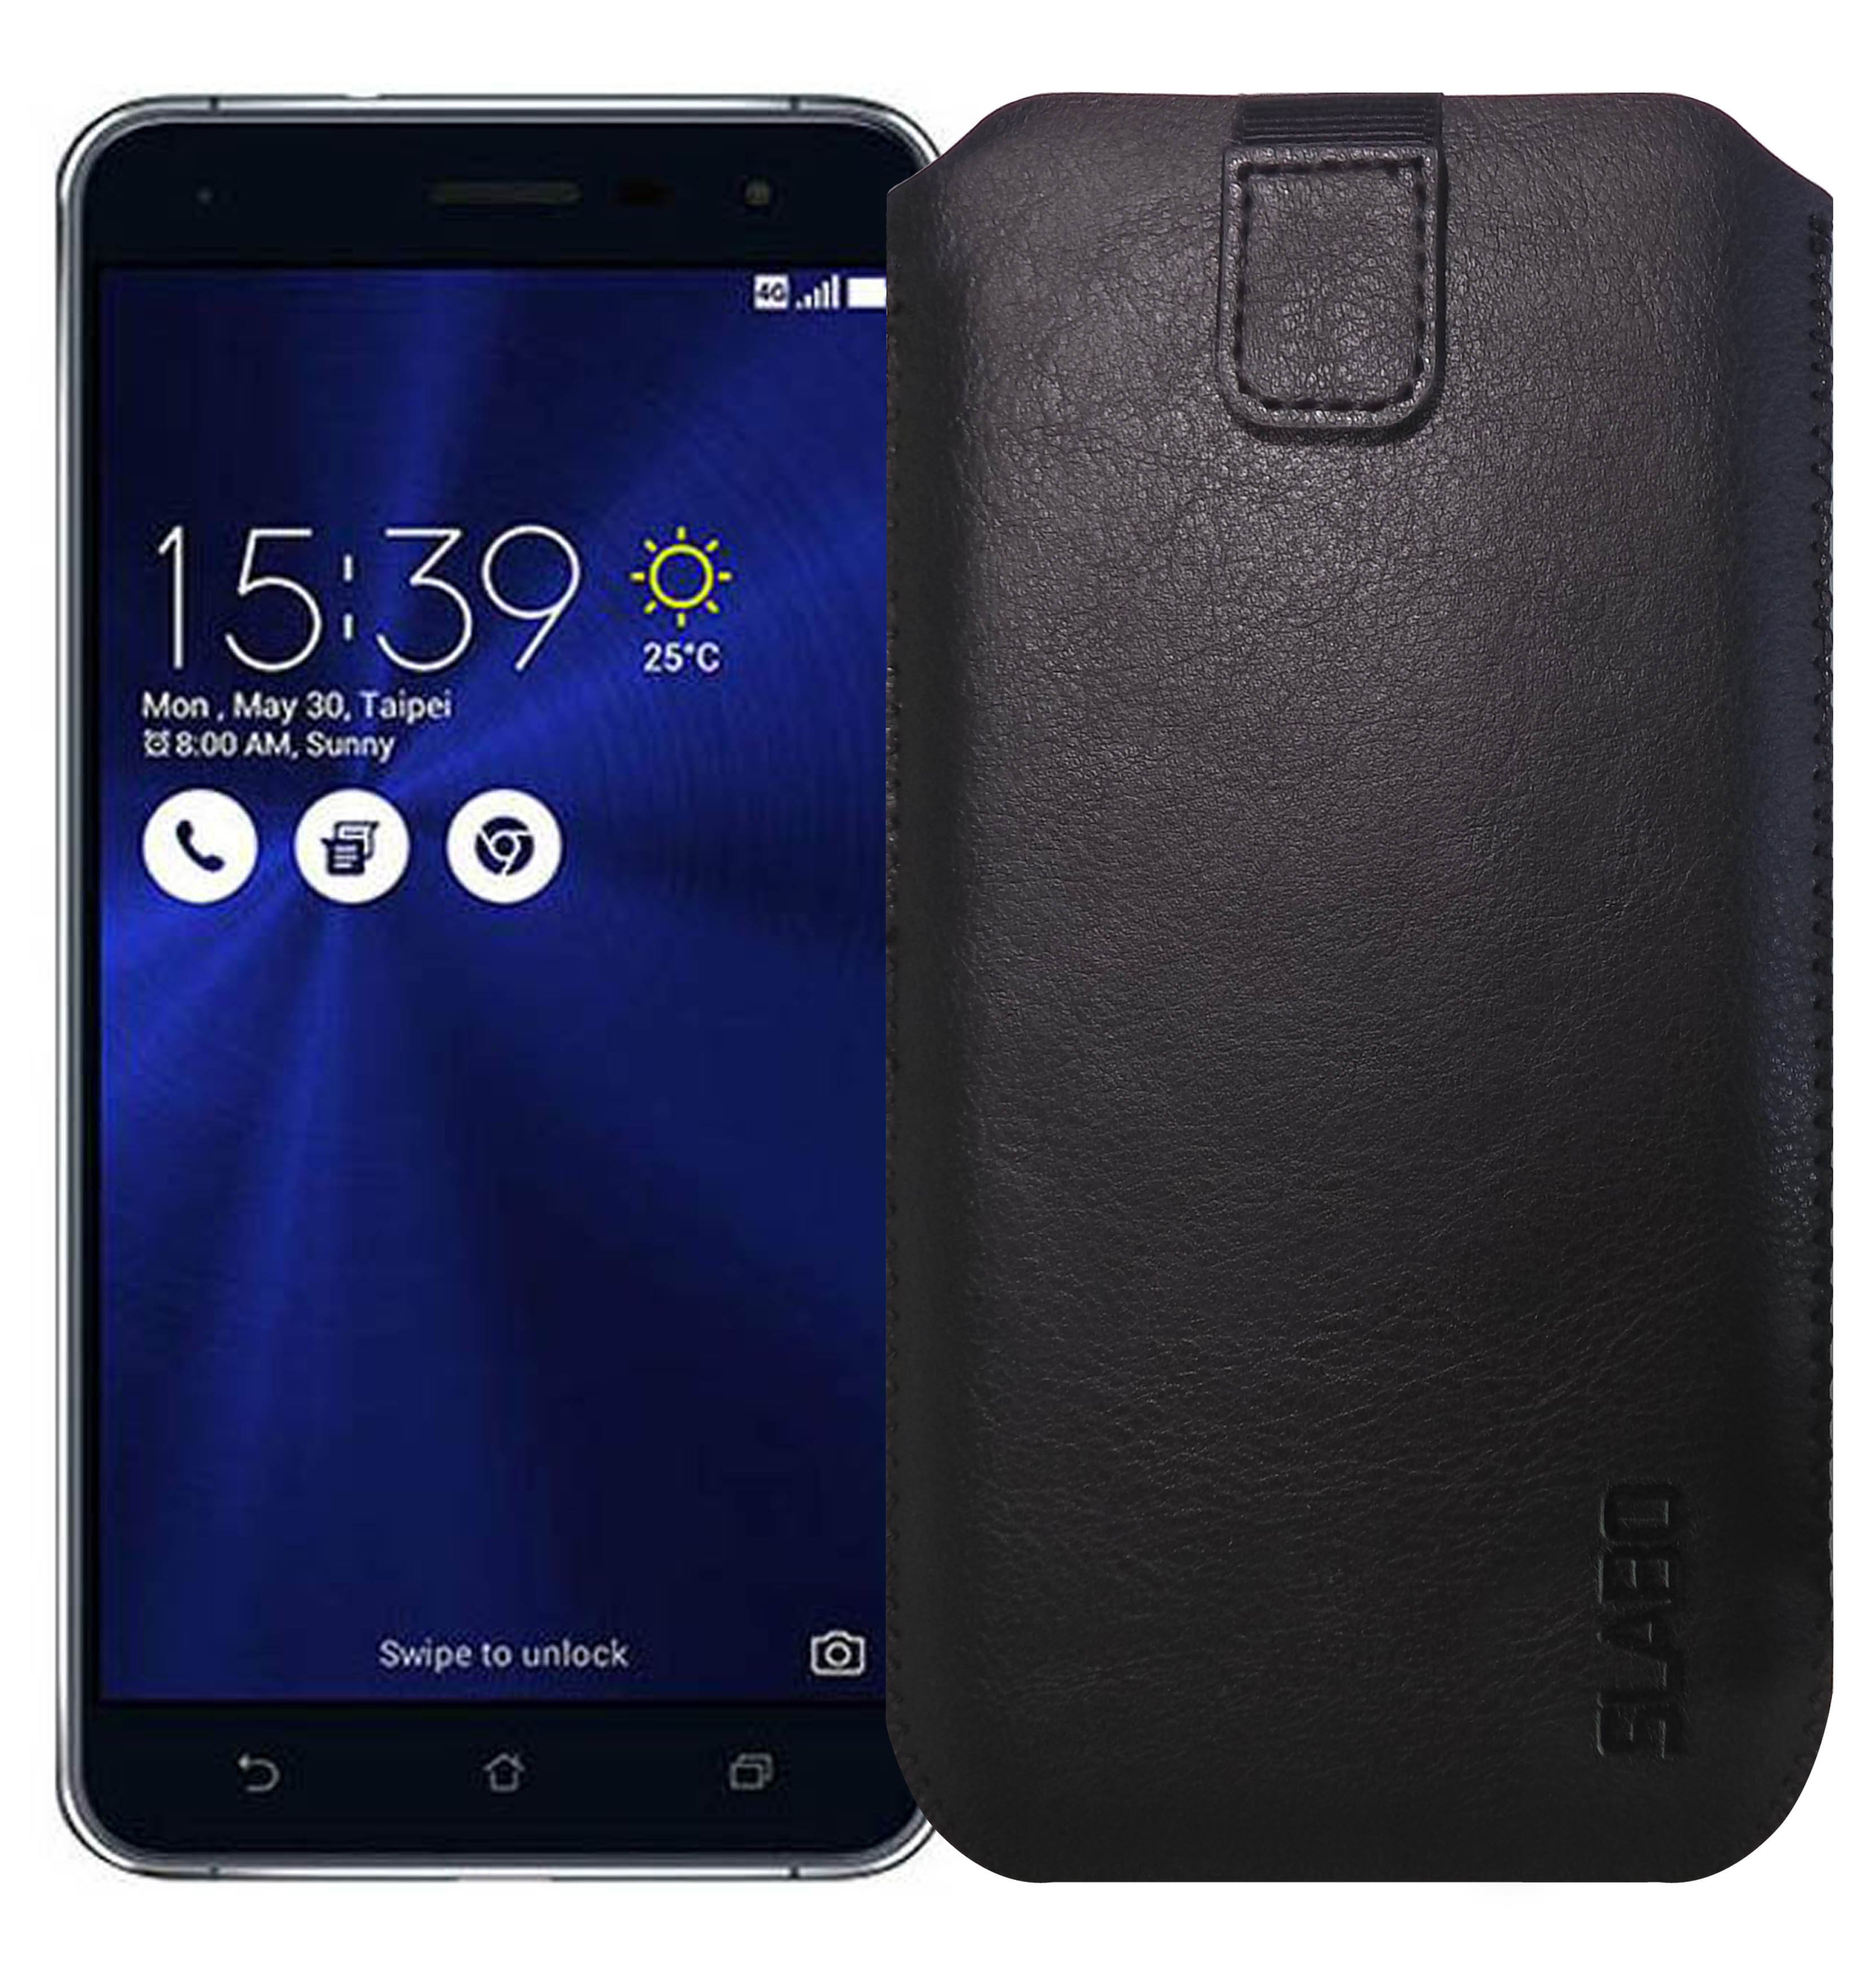 Product Slabo Case For Asus Zenfone 3 Ze520kl 55 Deluxe Zs570kl Ze552kl Protective Cover Pu Leather Black